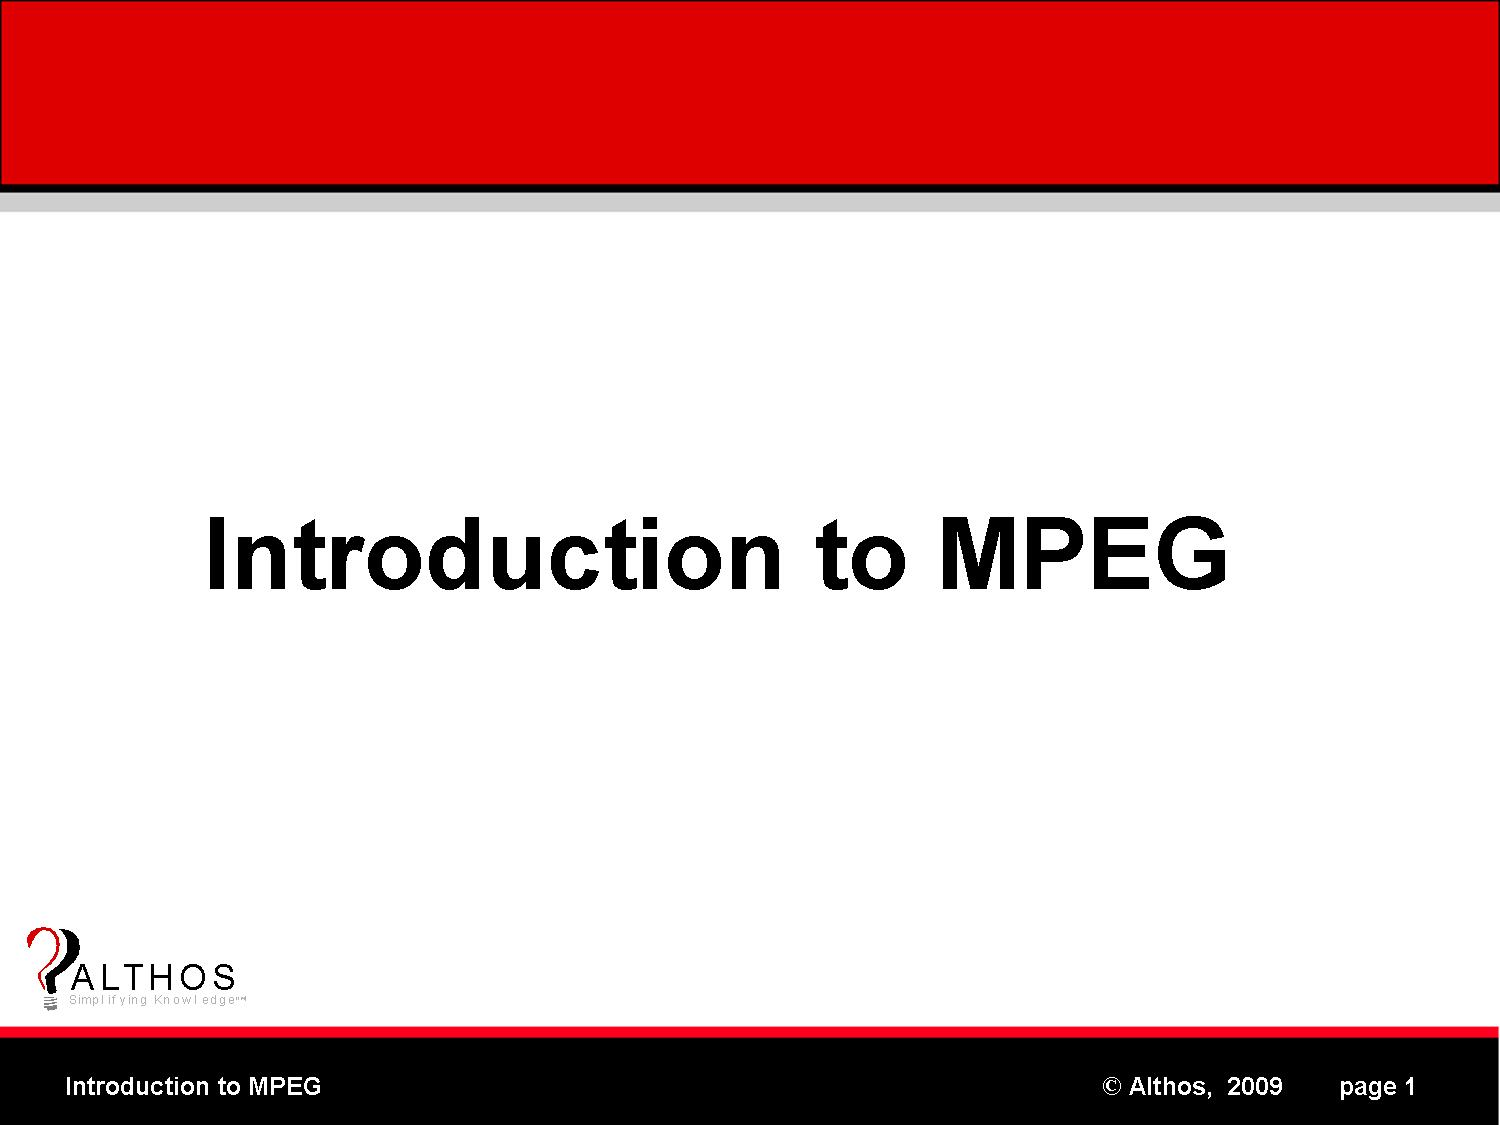 MPEG Tutorial - Introduction to moving picture Experts Group